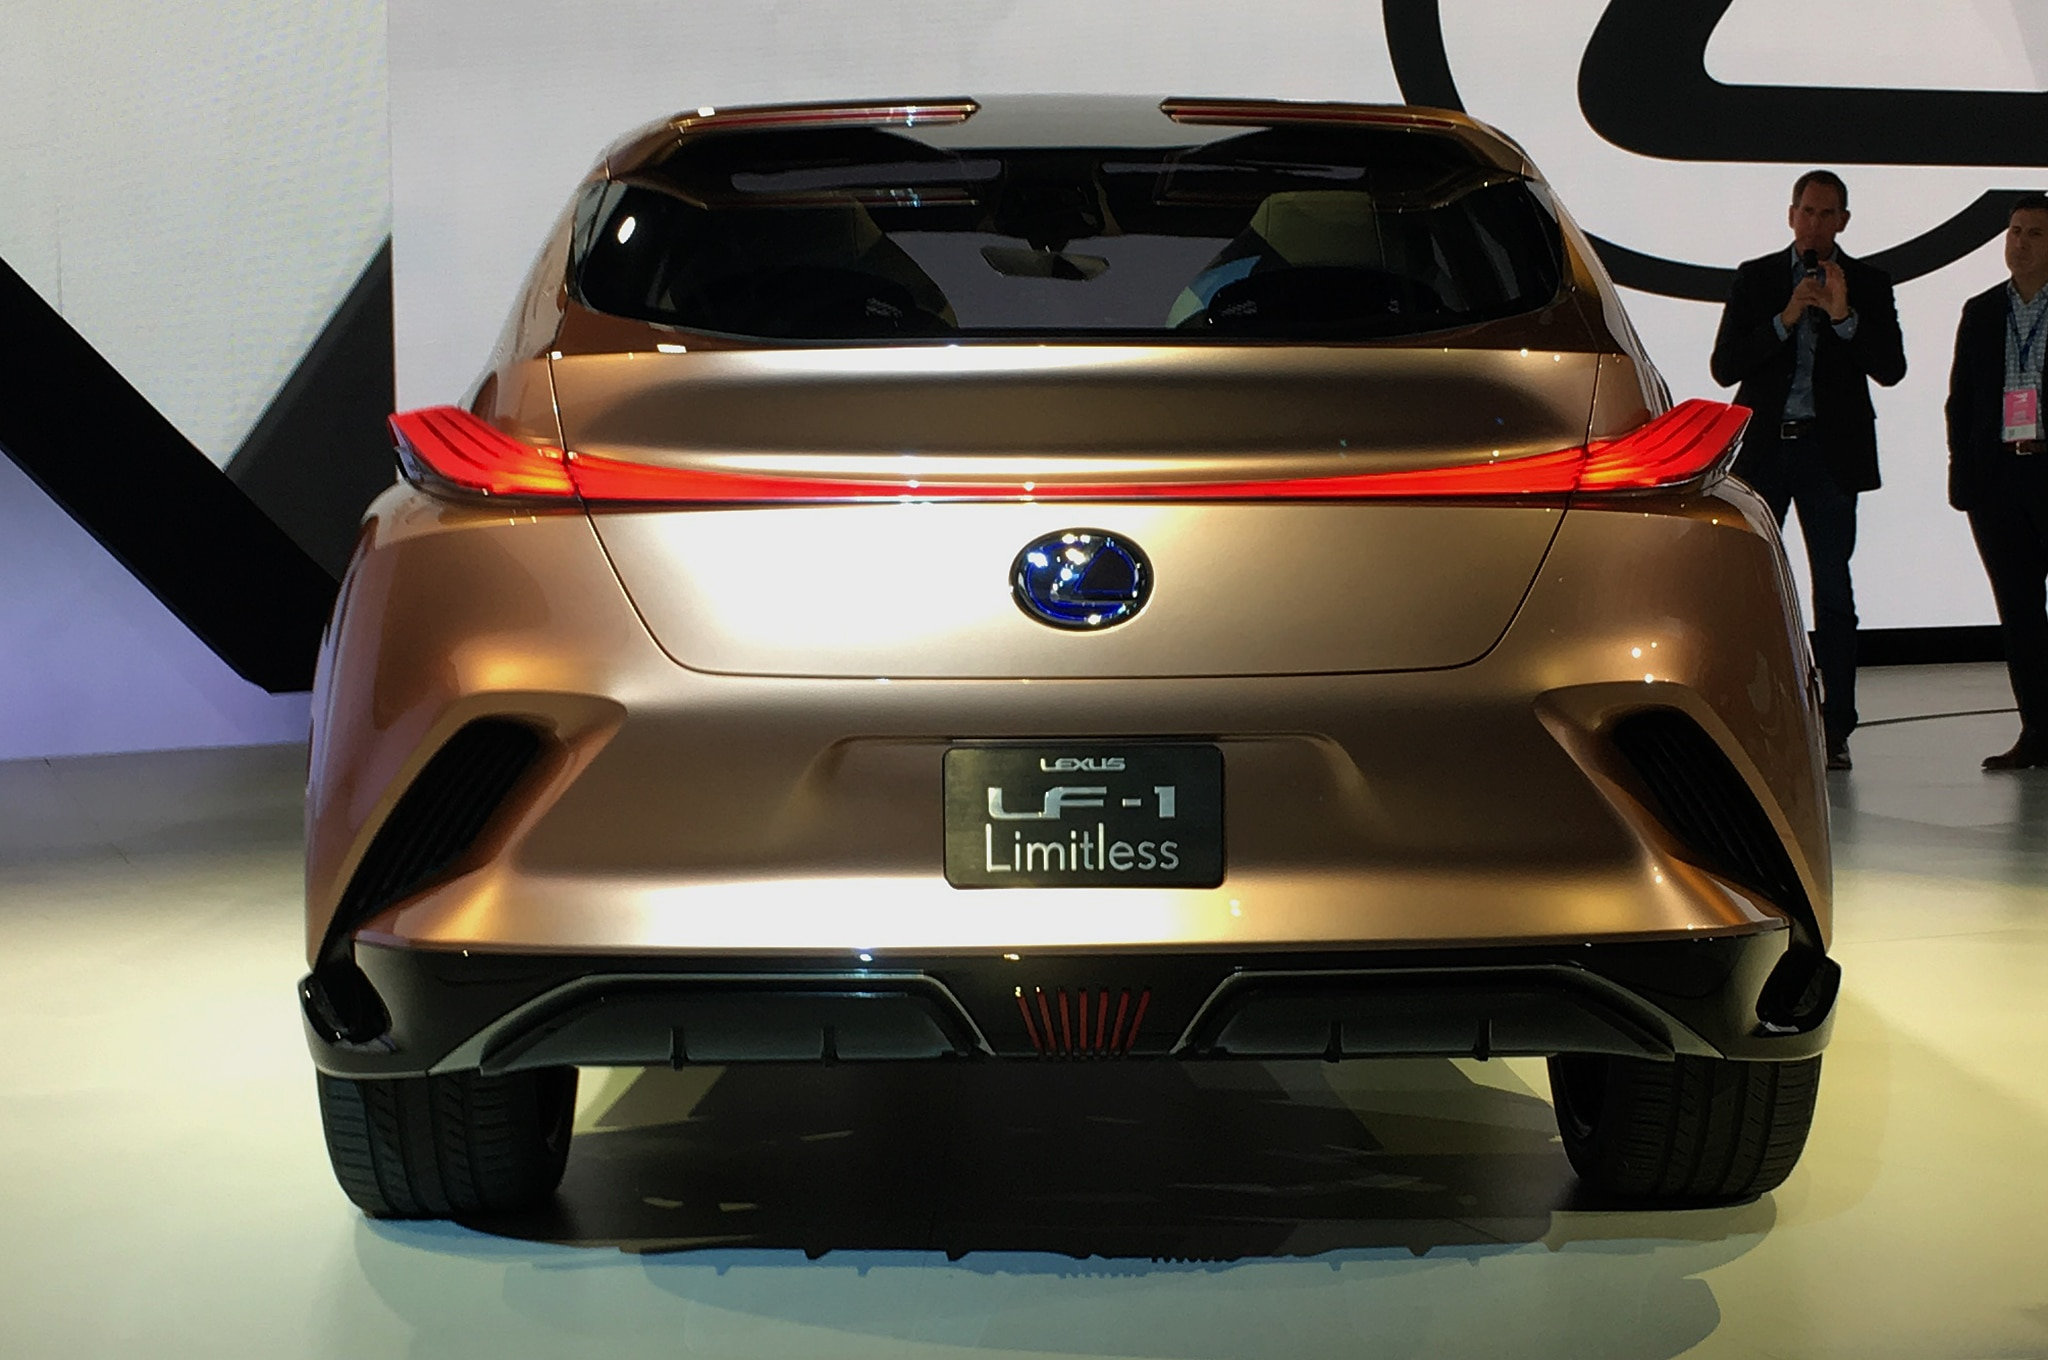 https://st.automobilemag.com/uploads/sites/11/2018/01/Lexus-LF-1-Limitless-concept-rear.jpg